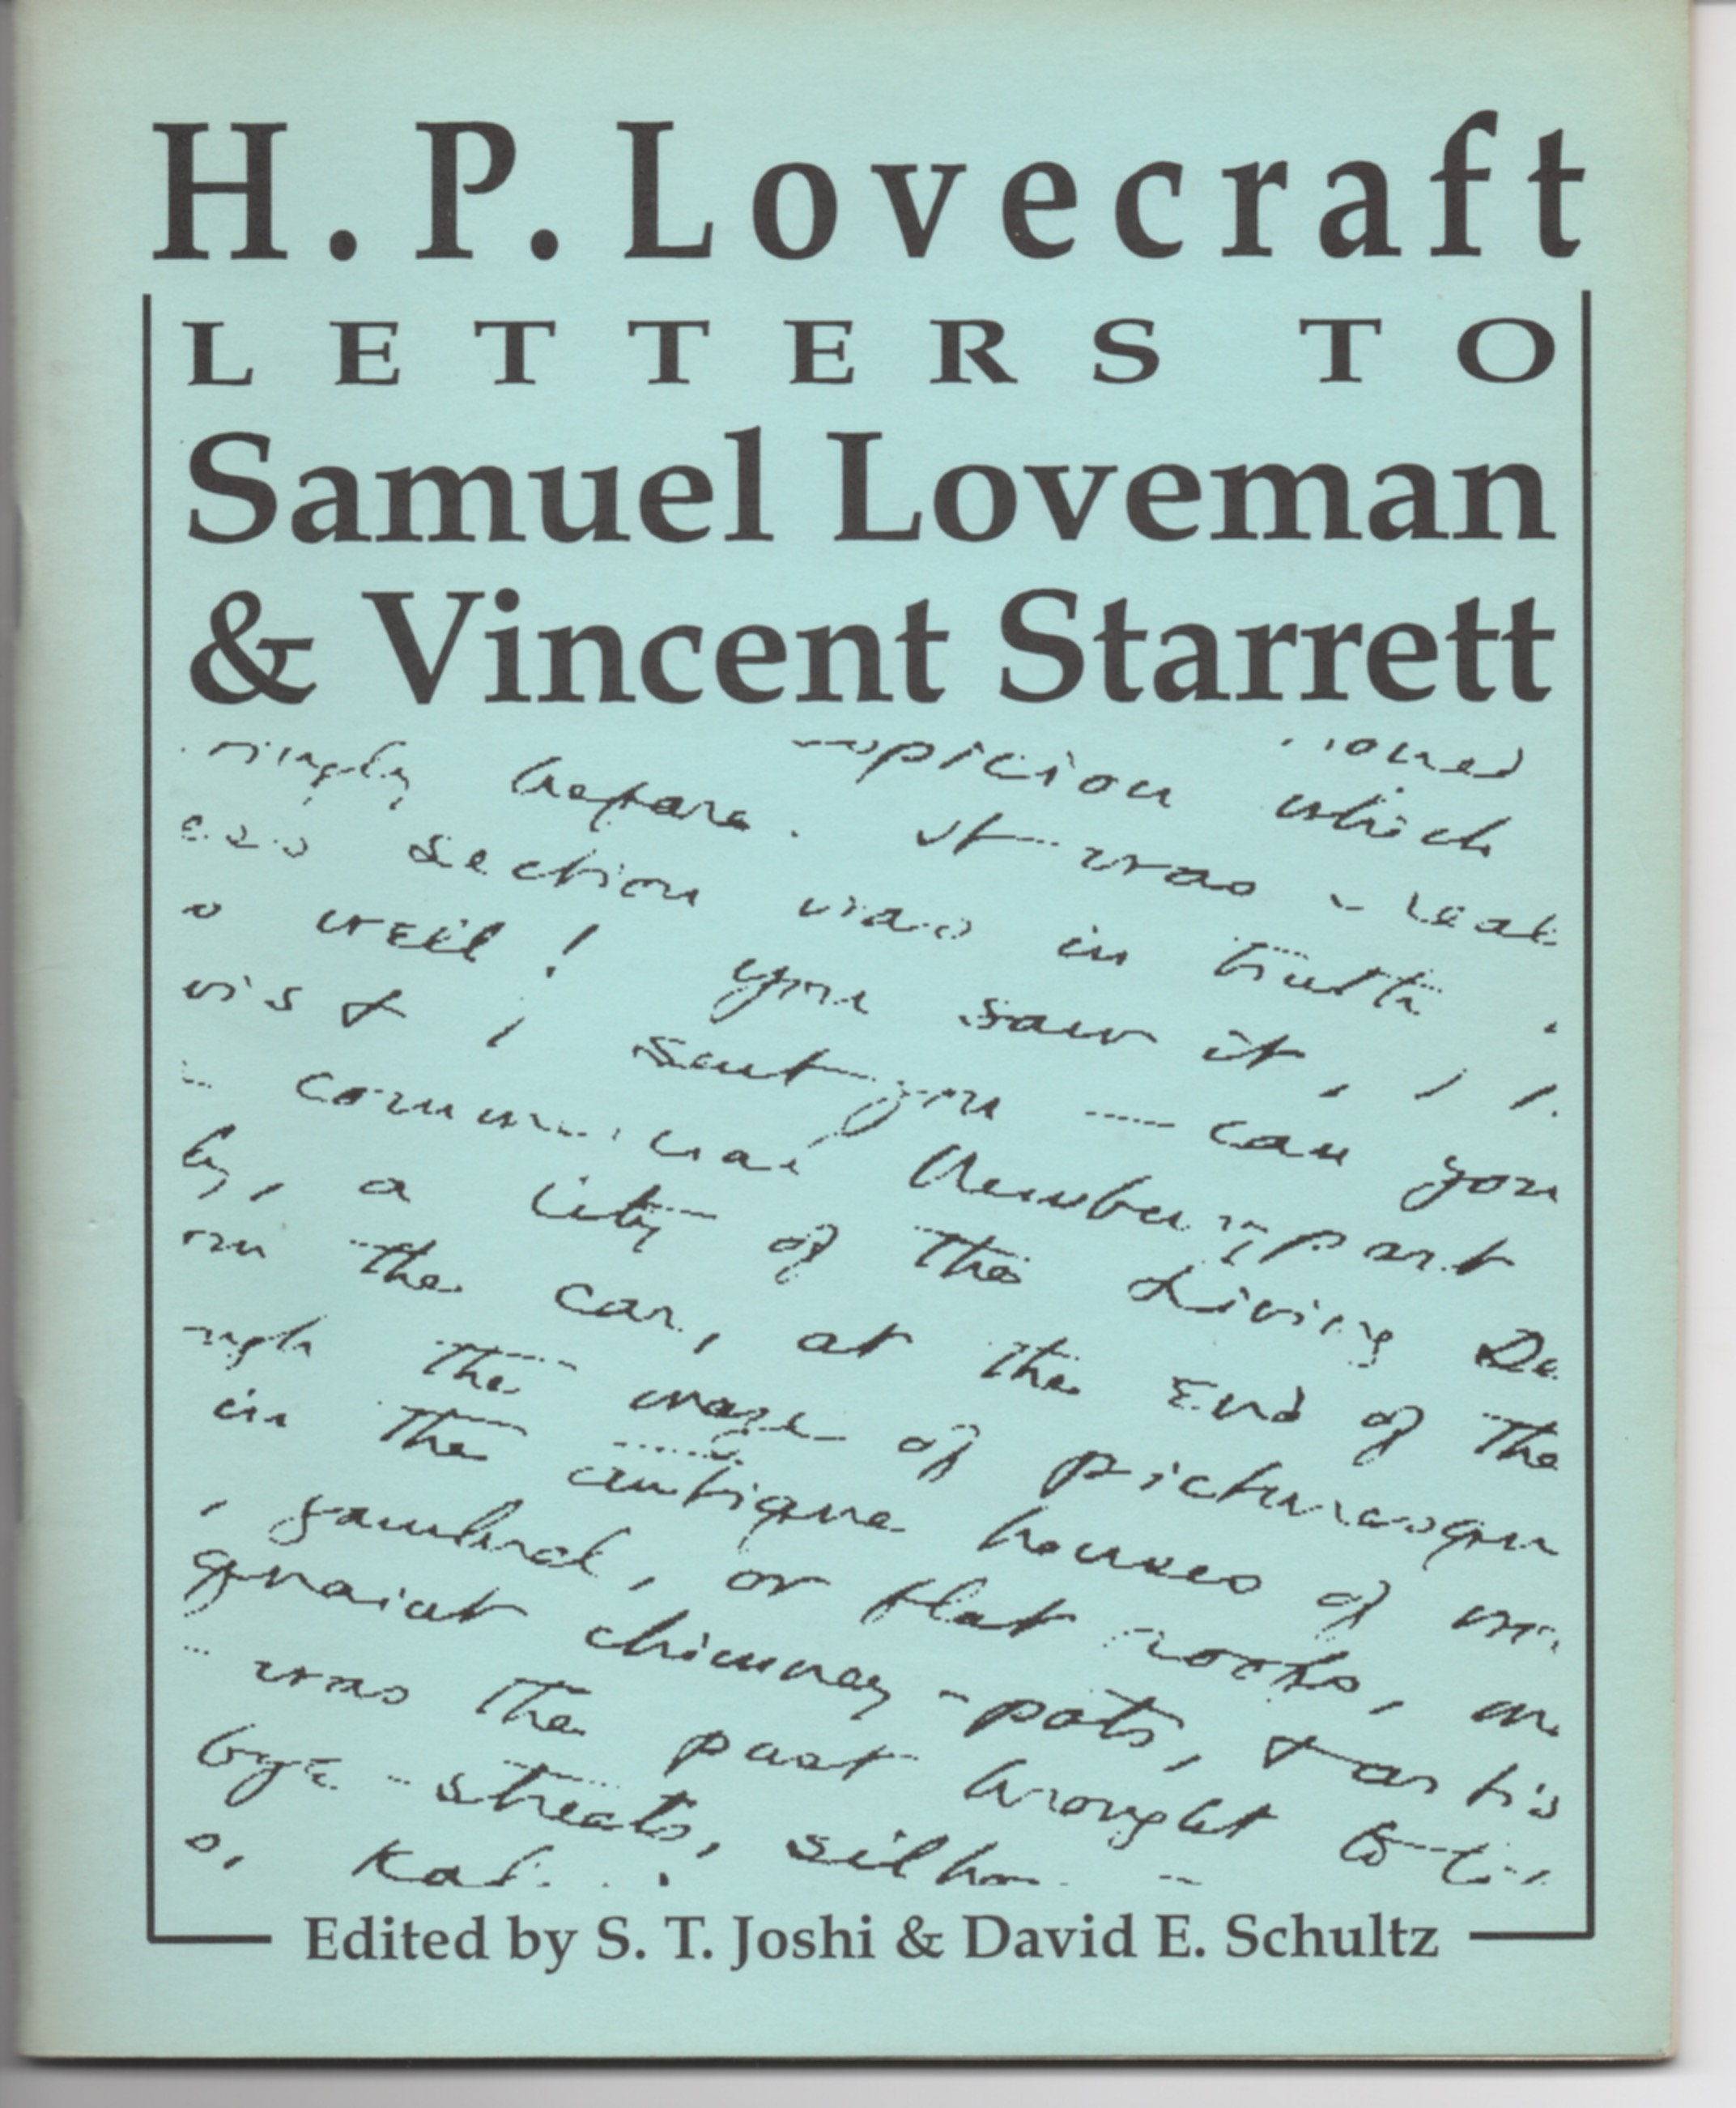 Some of Lovecraft's letters to Loveman and Starrett were collected into this little booklet back in the 1994 by the Necronomicon Press.